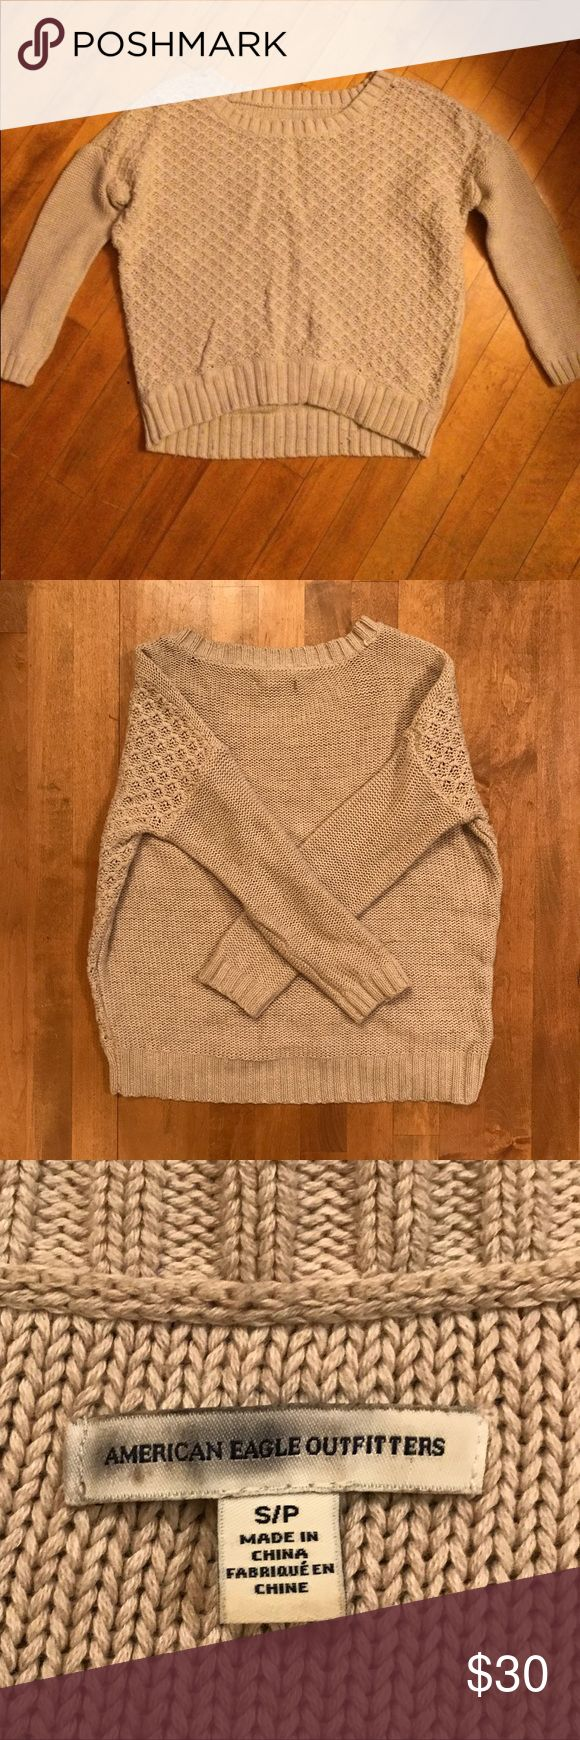 American Eagle Tan Sweater AE sweater, nice and cozy! Size small. Wide boat neck, could be worn off the shoulder. 3/4 sleeves, high low fit. Looks cute with denim shorts or paired with skinny jeans and boots in the Fall! Great condition. Reasonable offers welcome! No trades. American Eagle Outfitters Sweaters